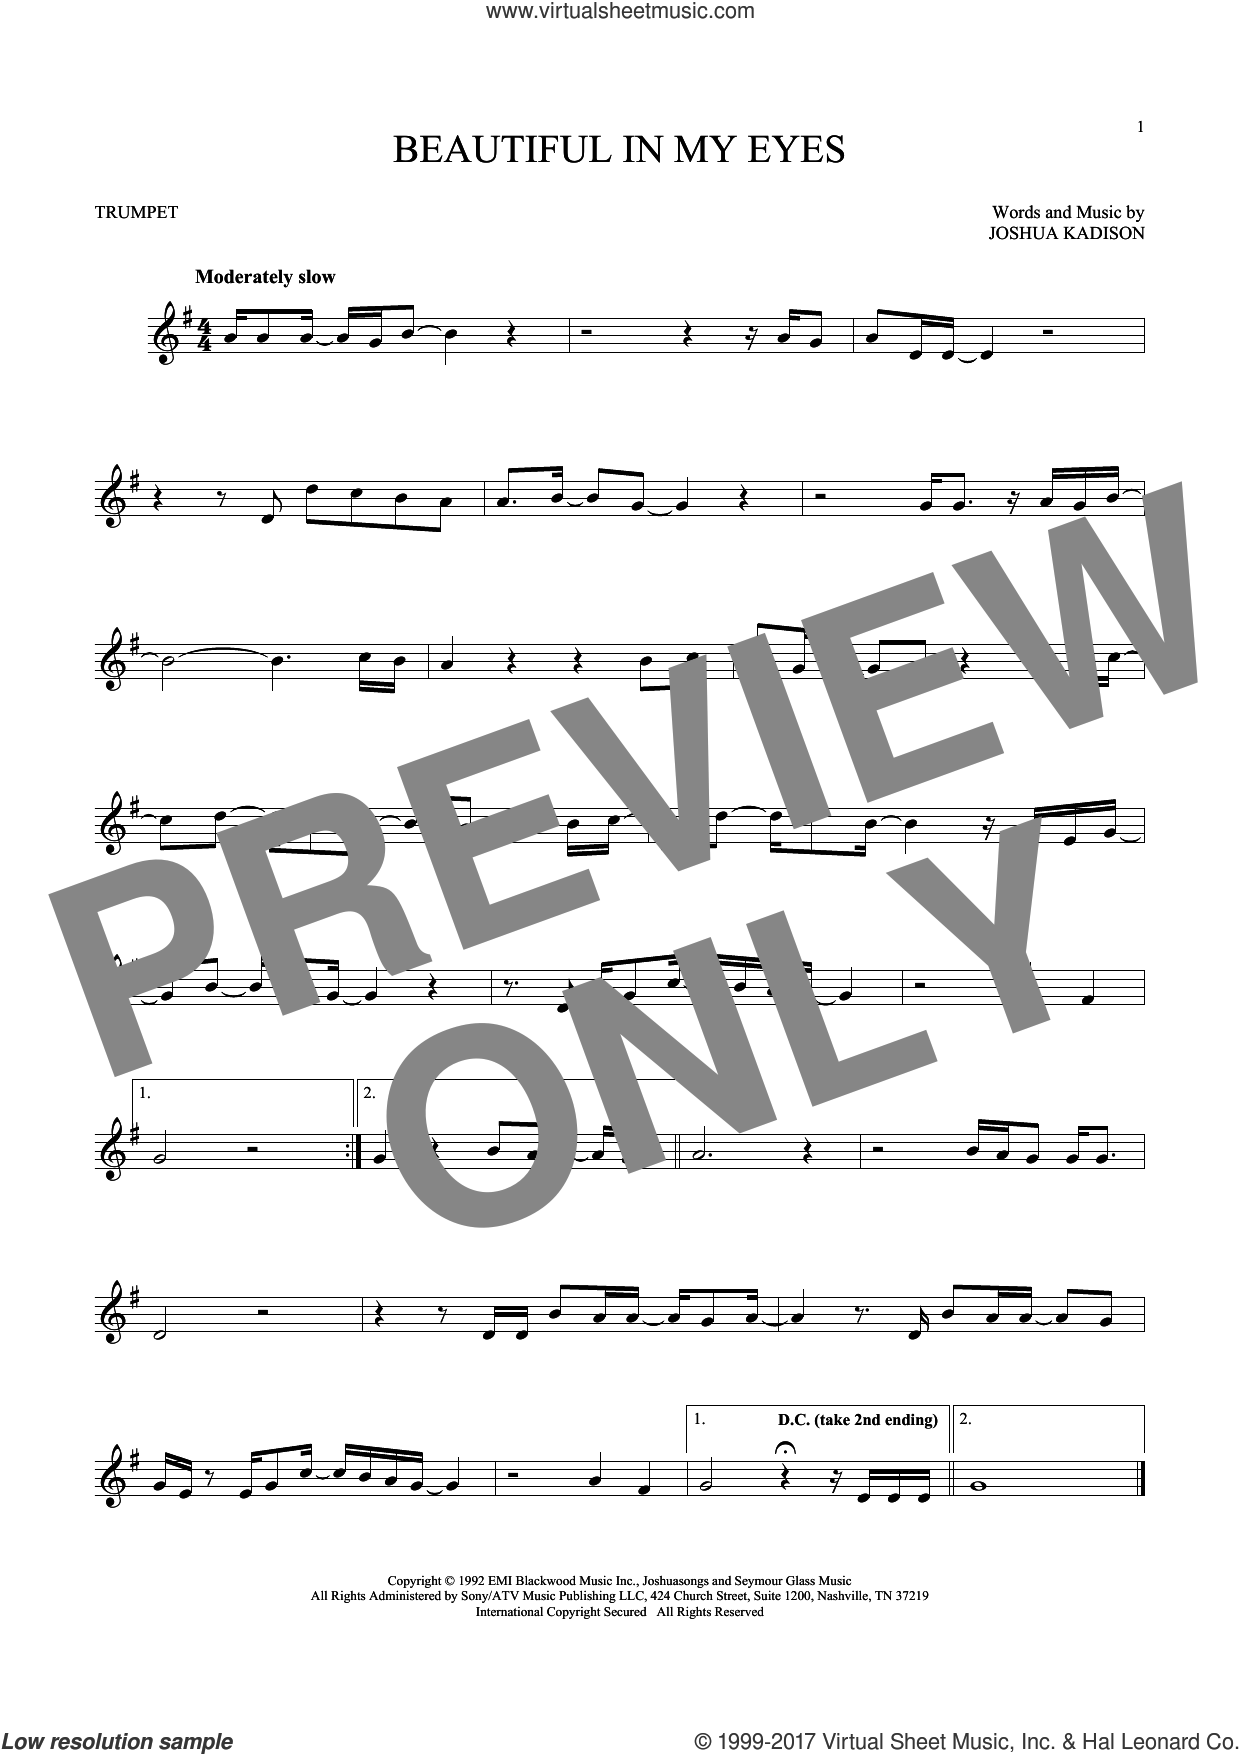 Beautiful In My Eyes sheet music for trumpet solo by Joshua Kadison, intermediate